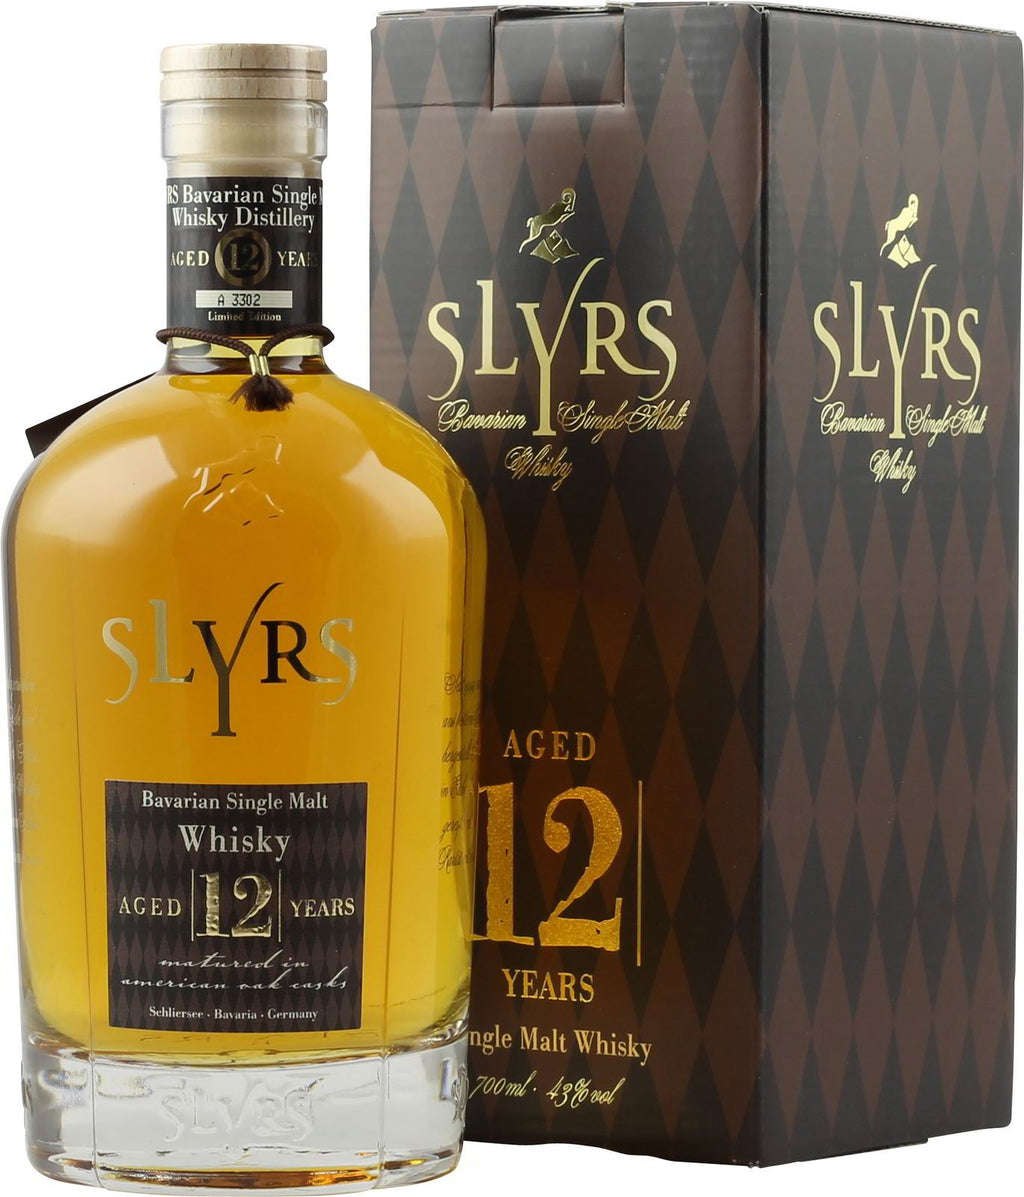 SLYRS Malt Whisky 12 Years 43% 0,7l - INSELLIEBE Store - Insel Usedom